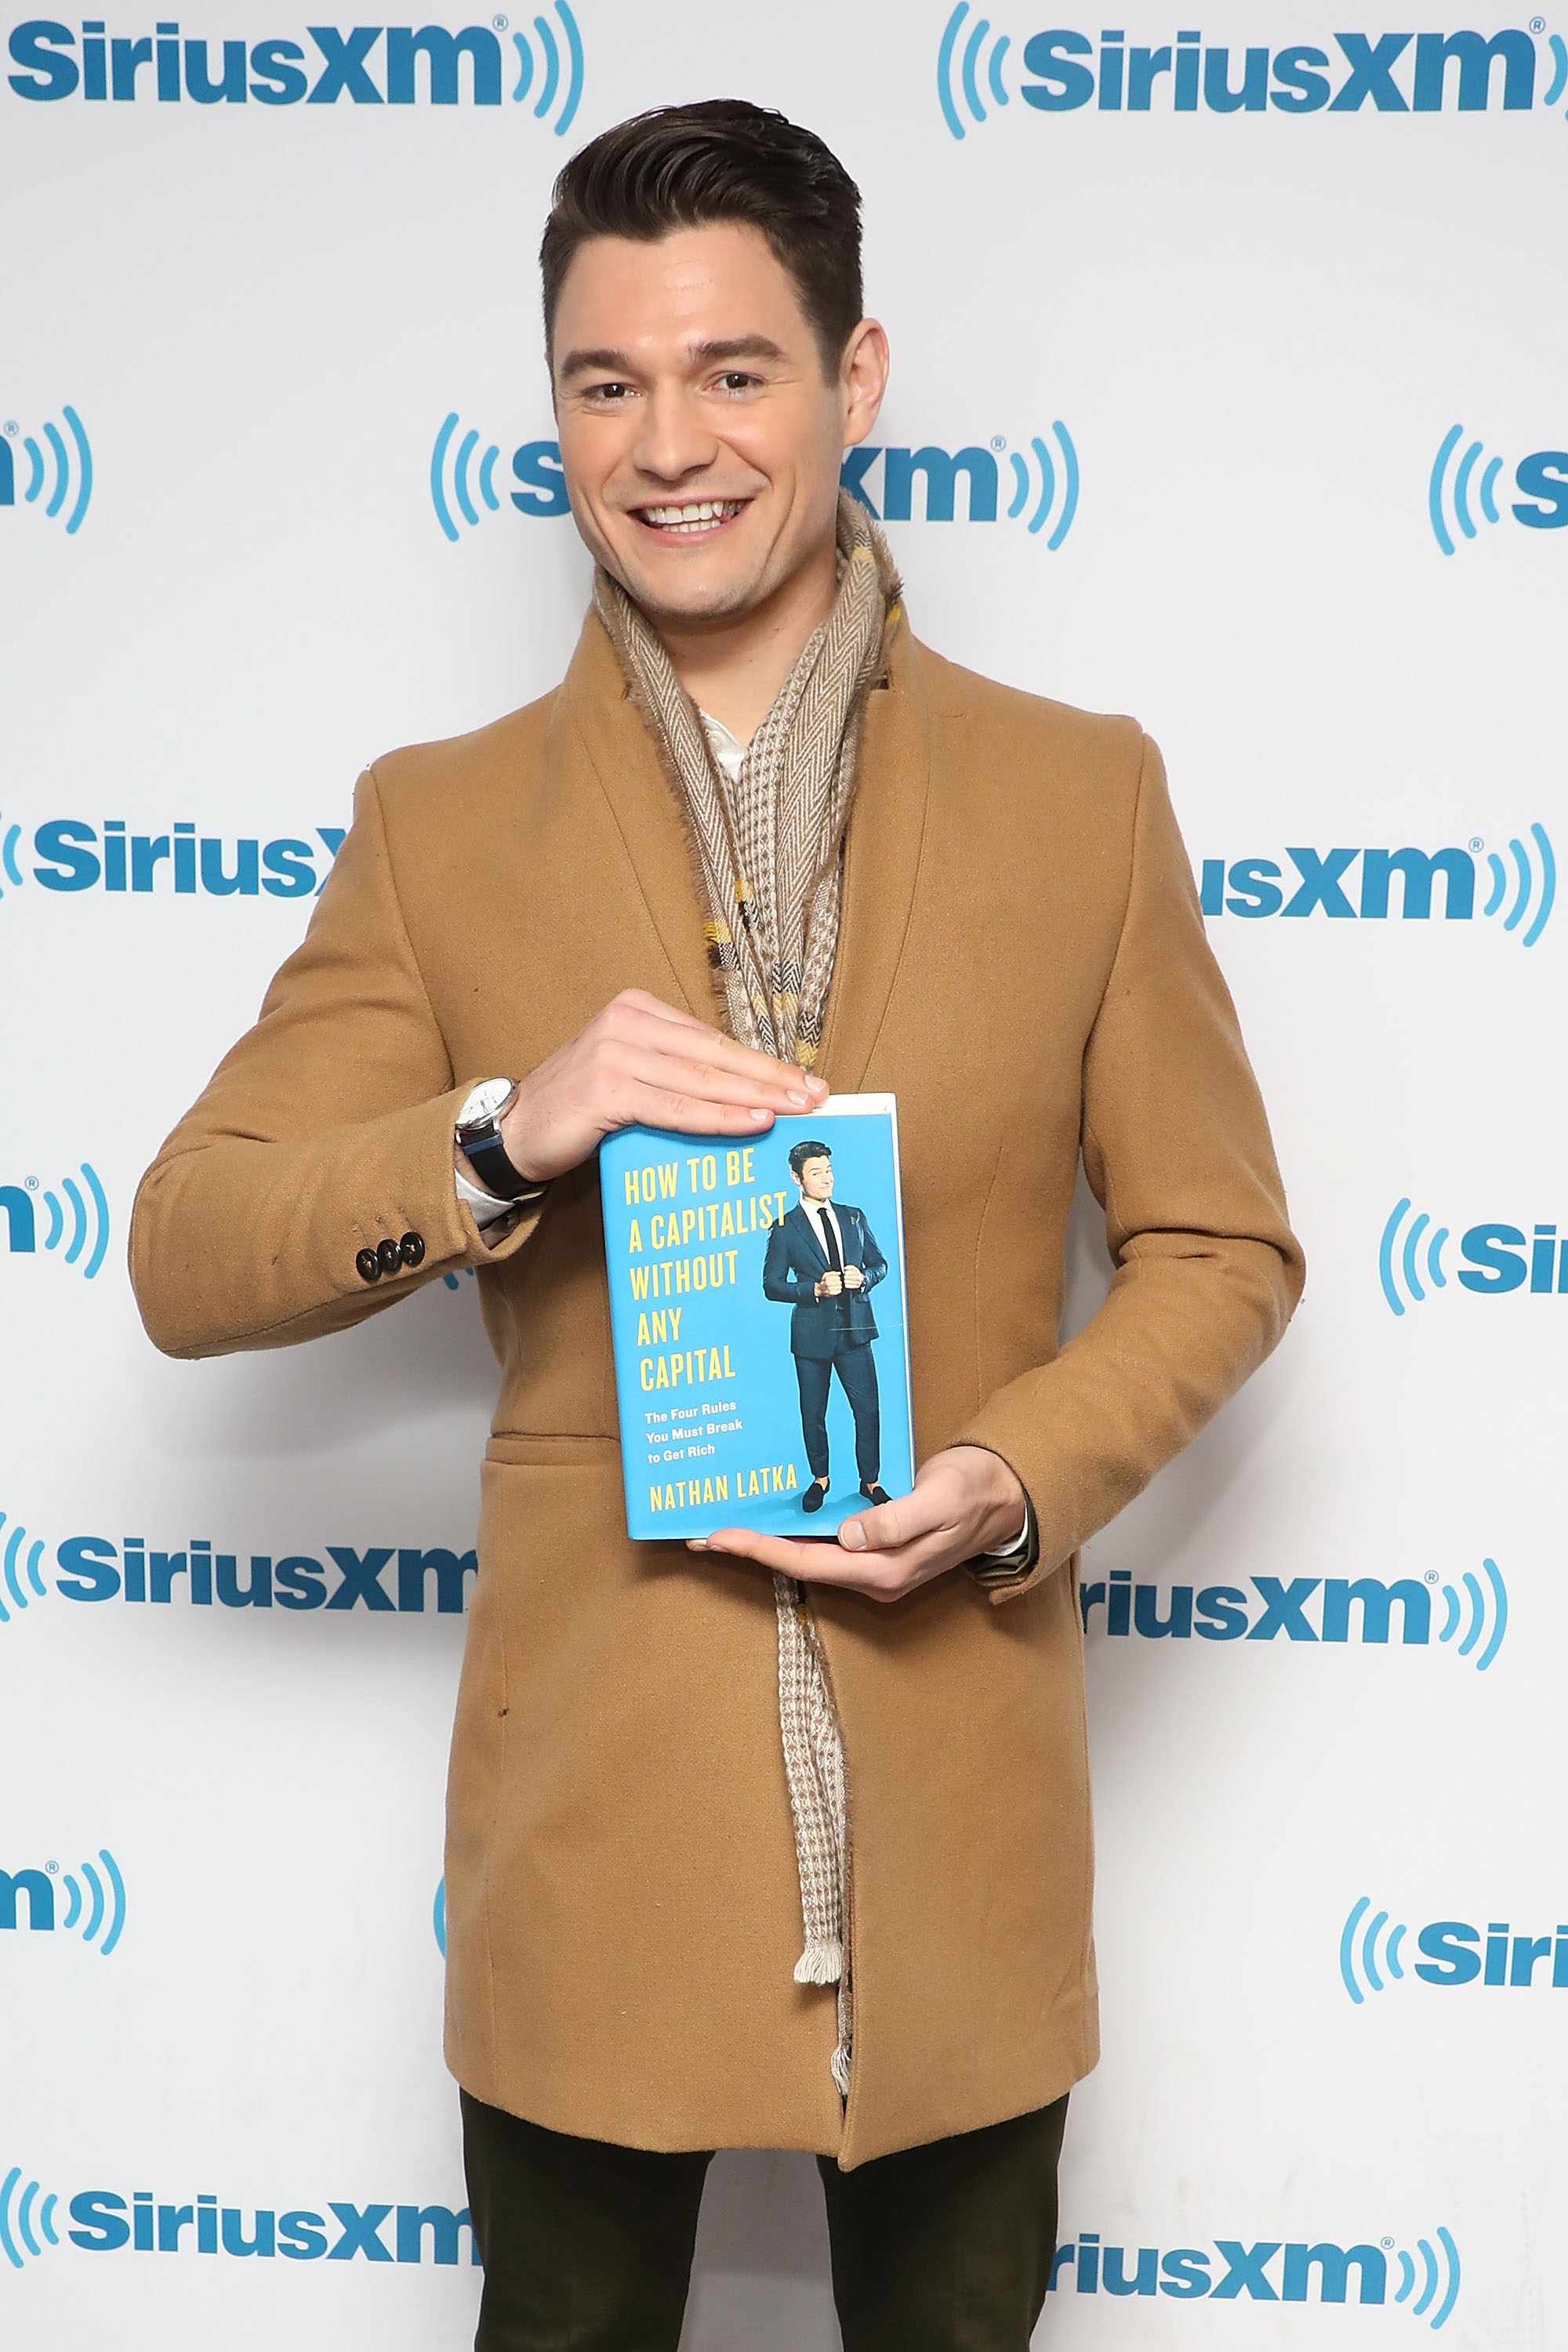 """Nathan Latka posing with his book """"How to Be a Capitalist Without Any Capital"""" at SiriusXM Studios."""